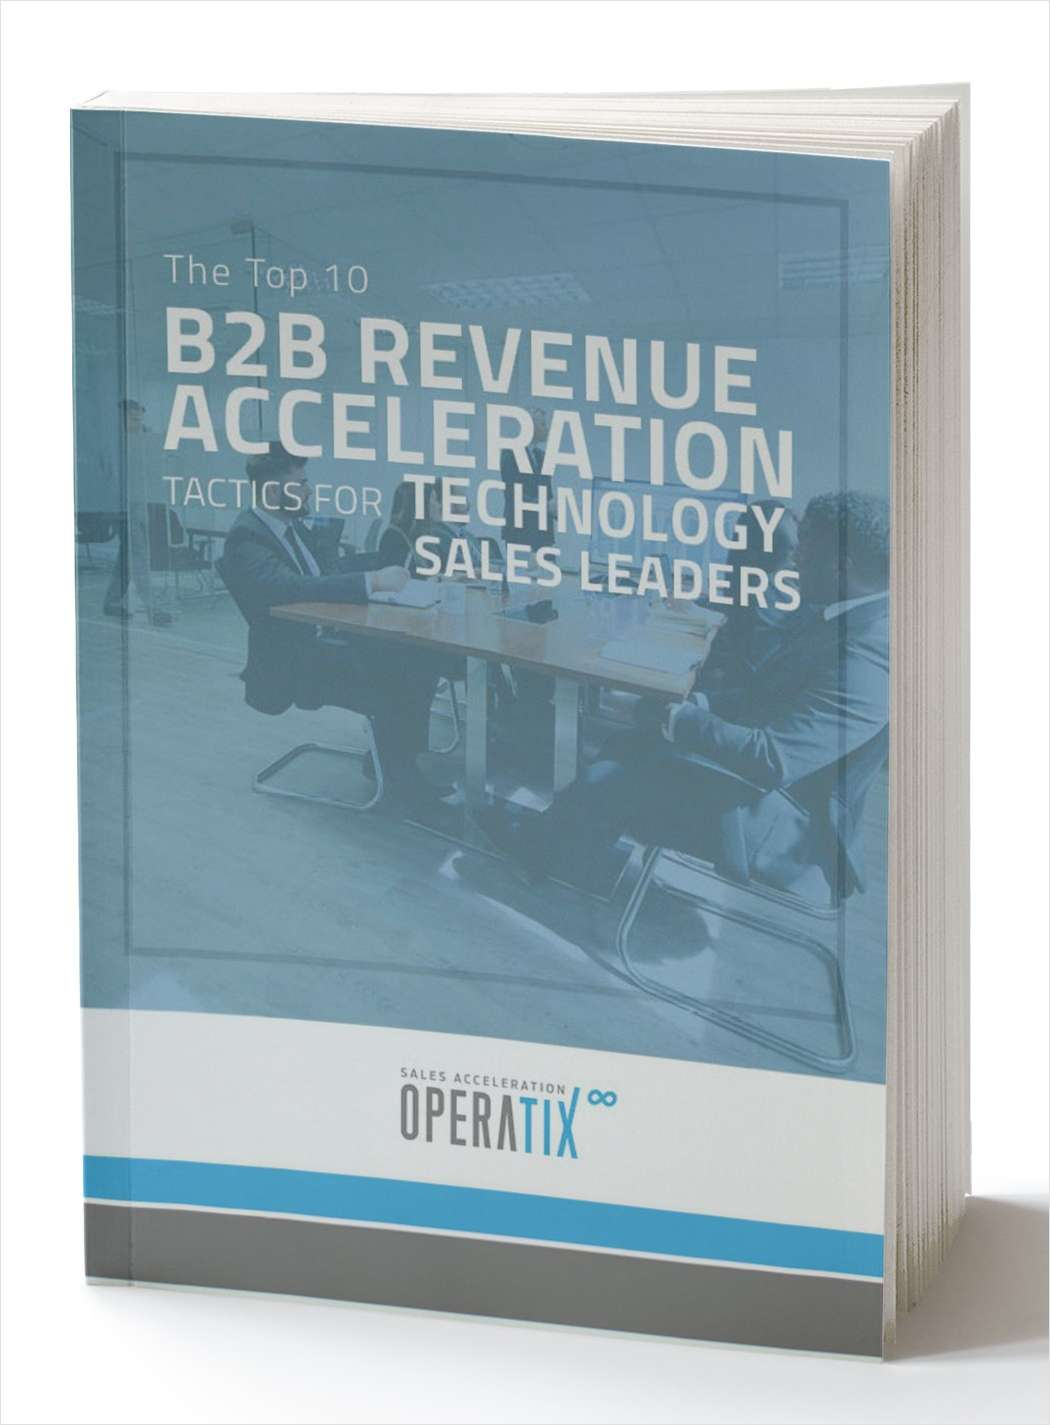 B2B Revenue Acceleration Tactics for Technology Sales Leaders